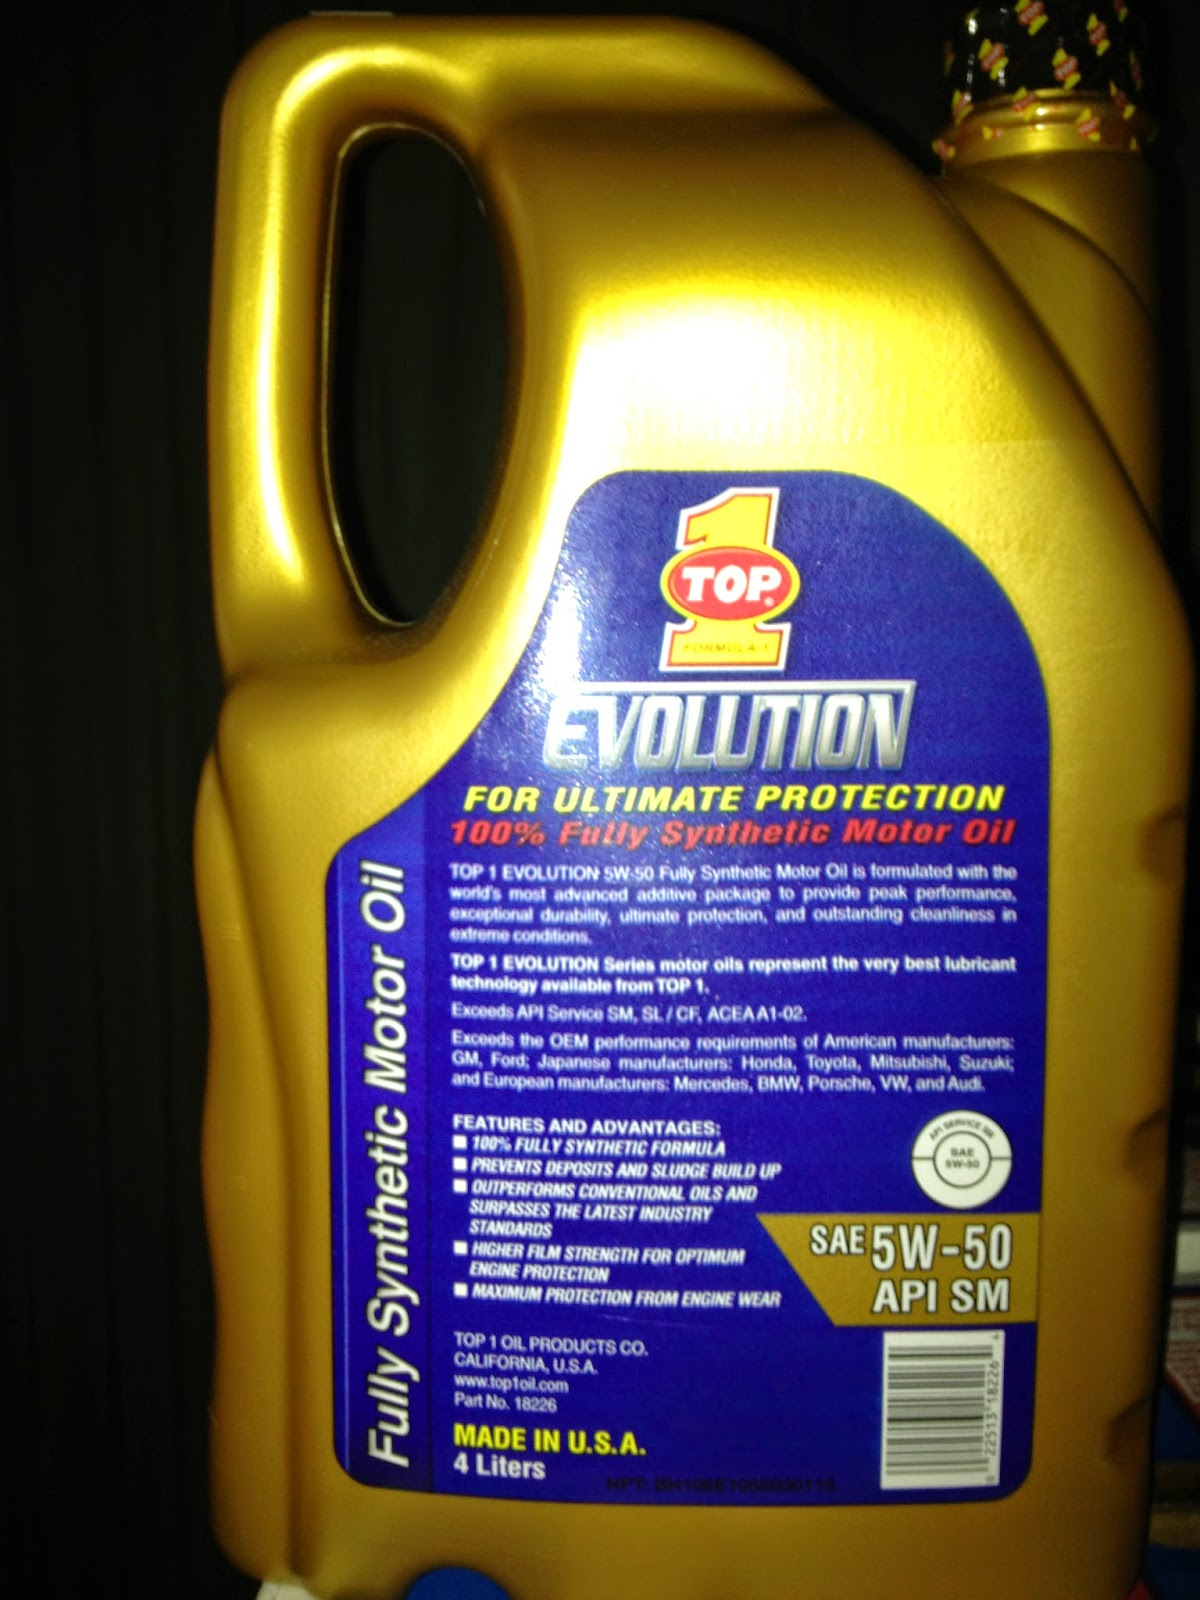 Mahindra scorpio johor bahru selling top1 engine oil 5w50 for 5w50 synthetic motor oil